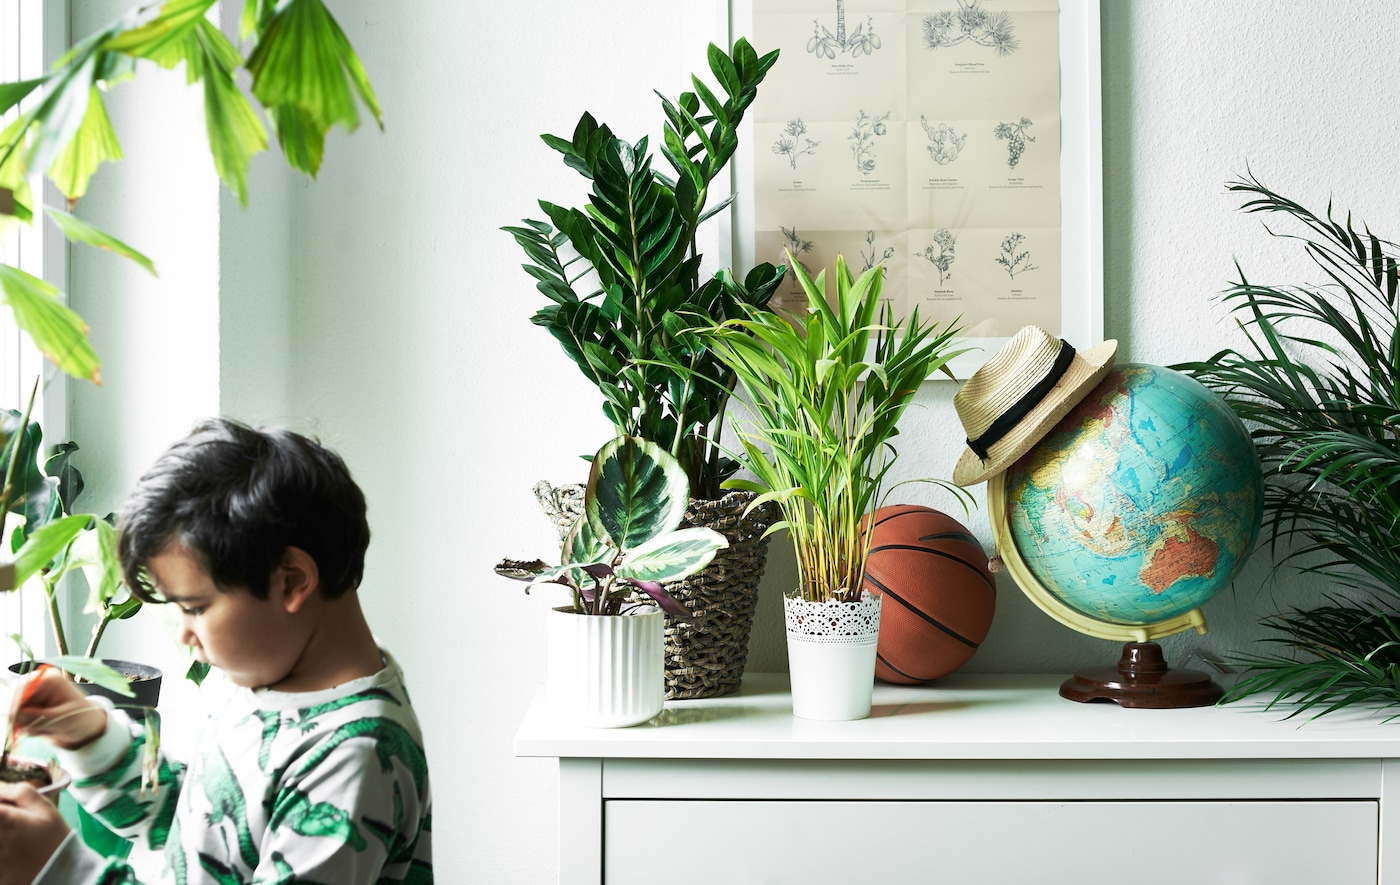 Show kids how fun it is to grow plants at home.